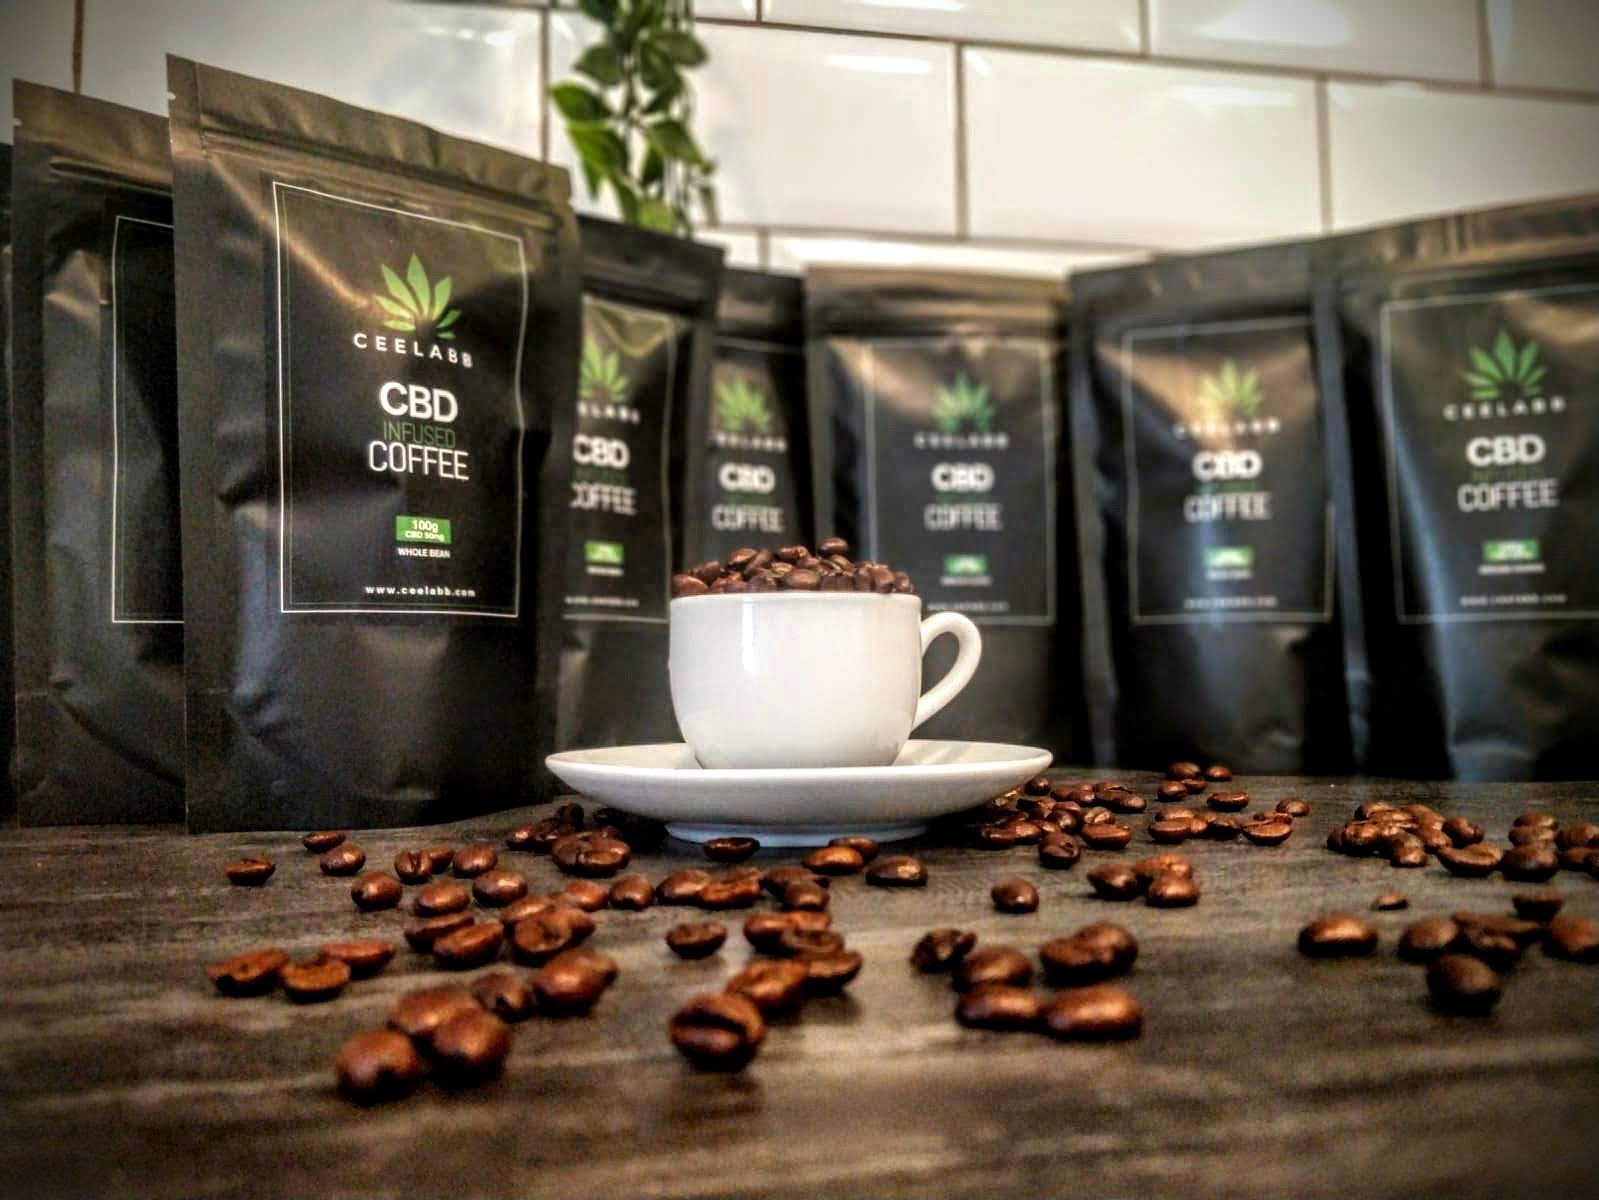 Ceelabb CBD infused Coffee beans in an espresso cup with Ceelabb 100gram bags of cbd coffee in the background